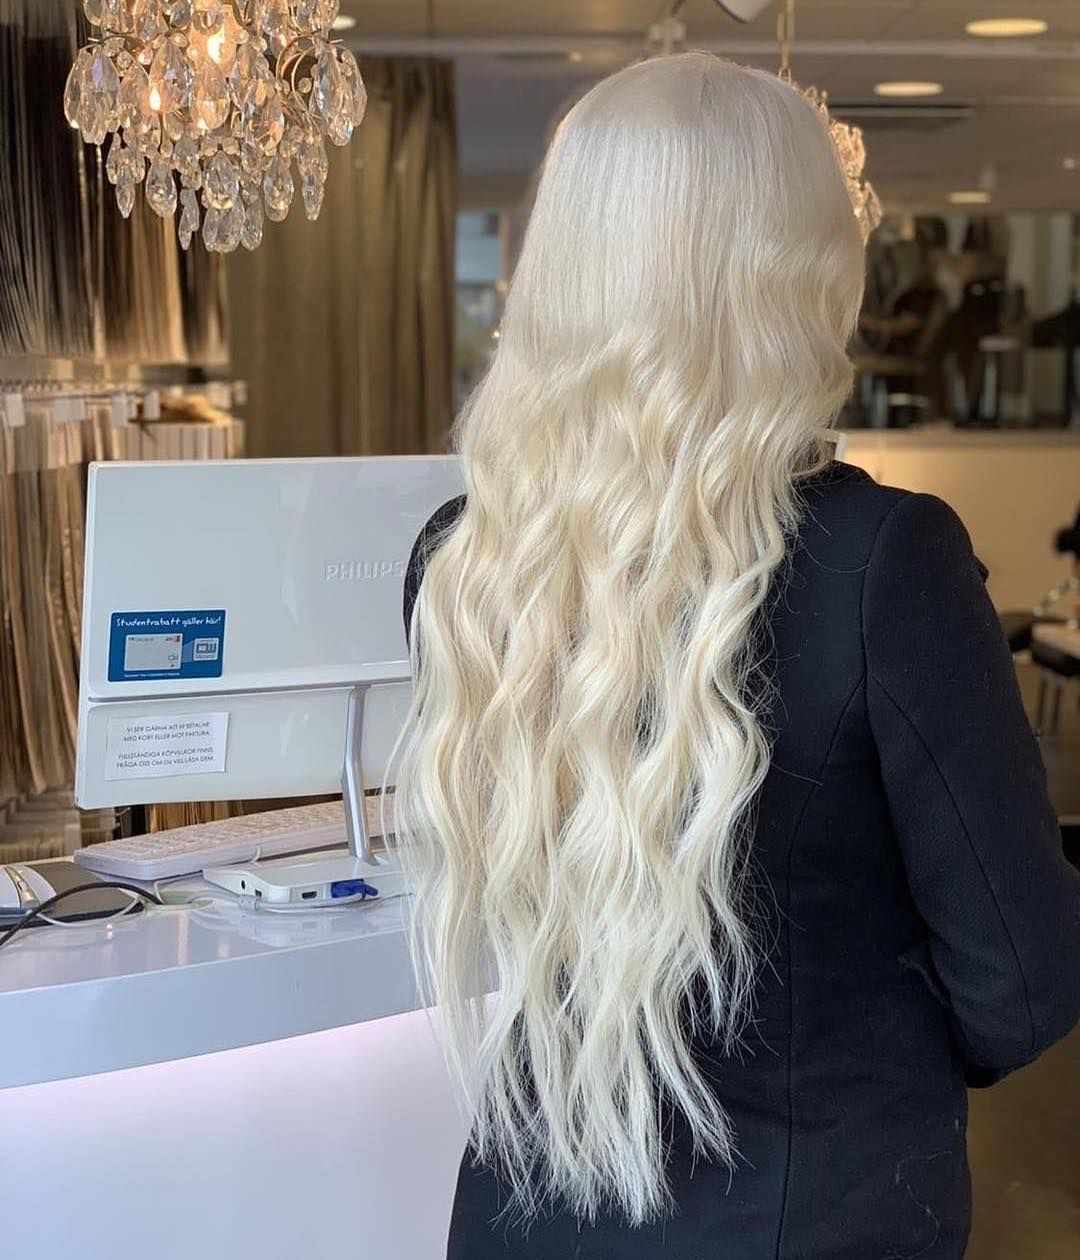 Go Long Or Go Home Have You Seen That We Now Have Premium Hair Extensions In 70 Cm 28 Ta Premium Hair Extensions Hair Extension Brands Long Hair Styles